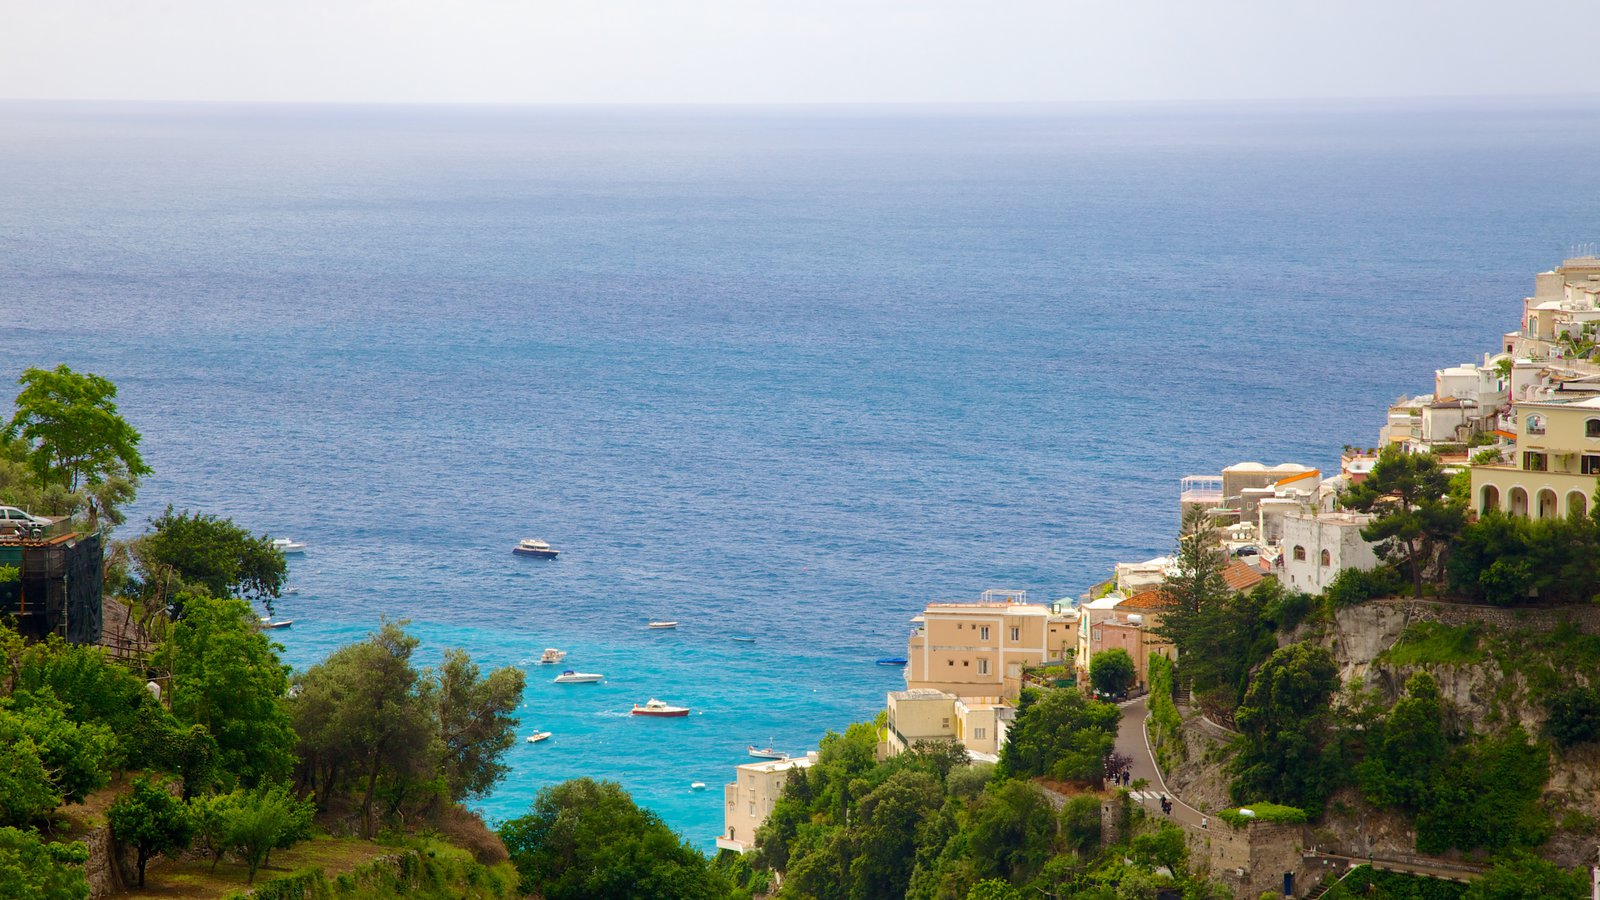 Positano which includes a city, a coastal town and general coastal views